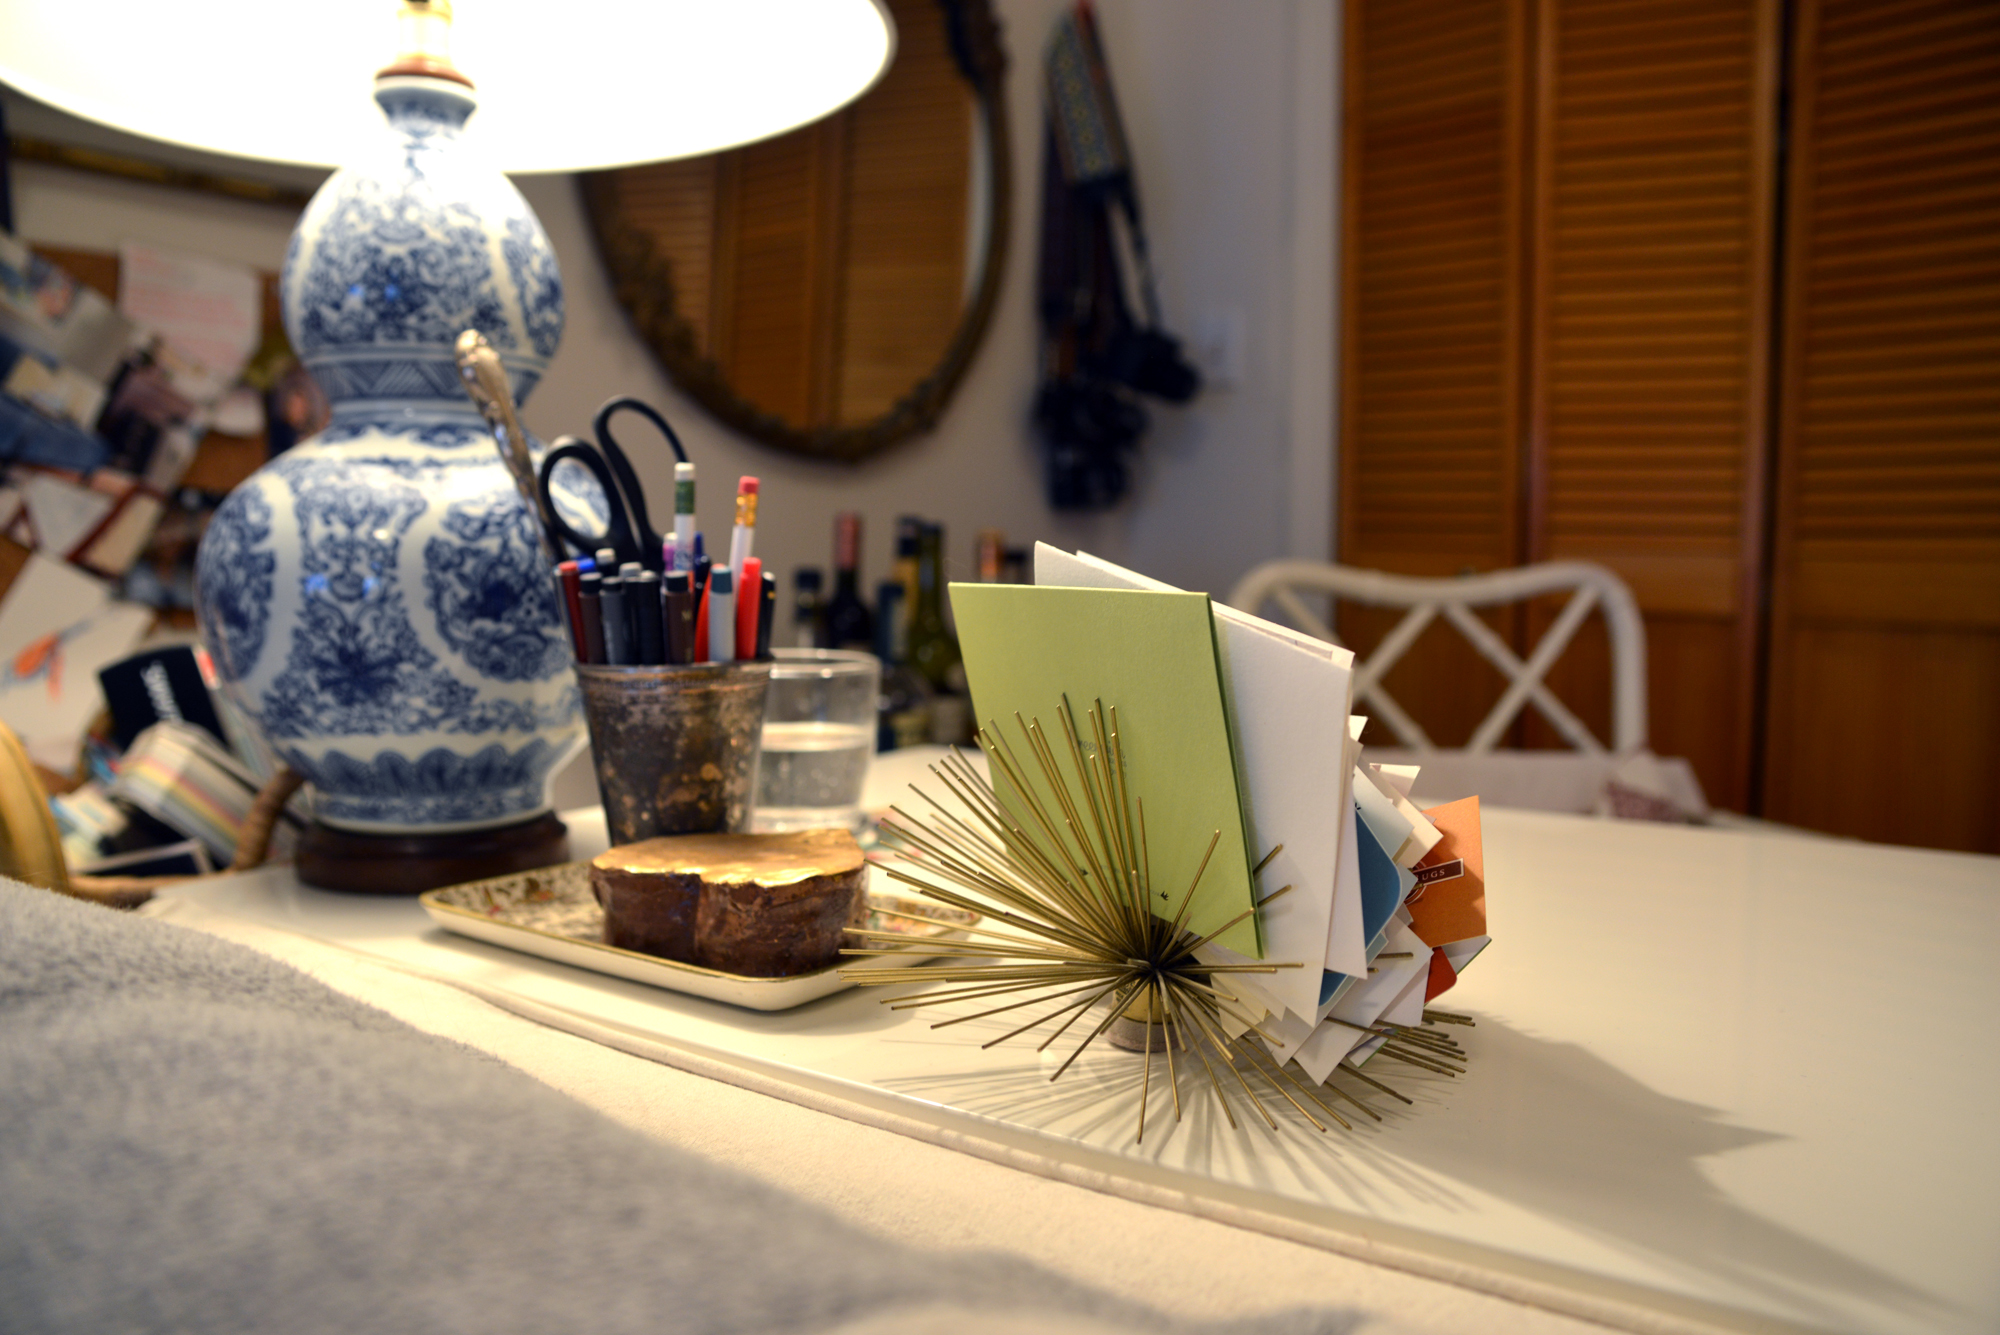 Sea Urchin or Wallflower Business Card Holder as Seen in Emily's Apartment   Photography By Lauren L Caron   Fourth Floor Walk Up © 2015